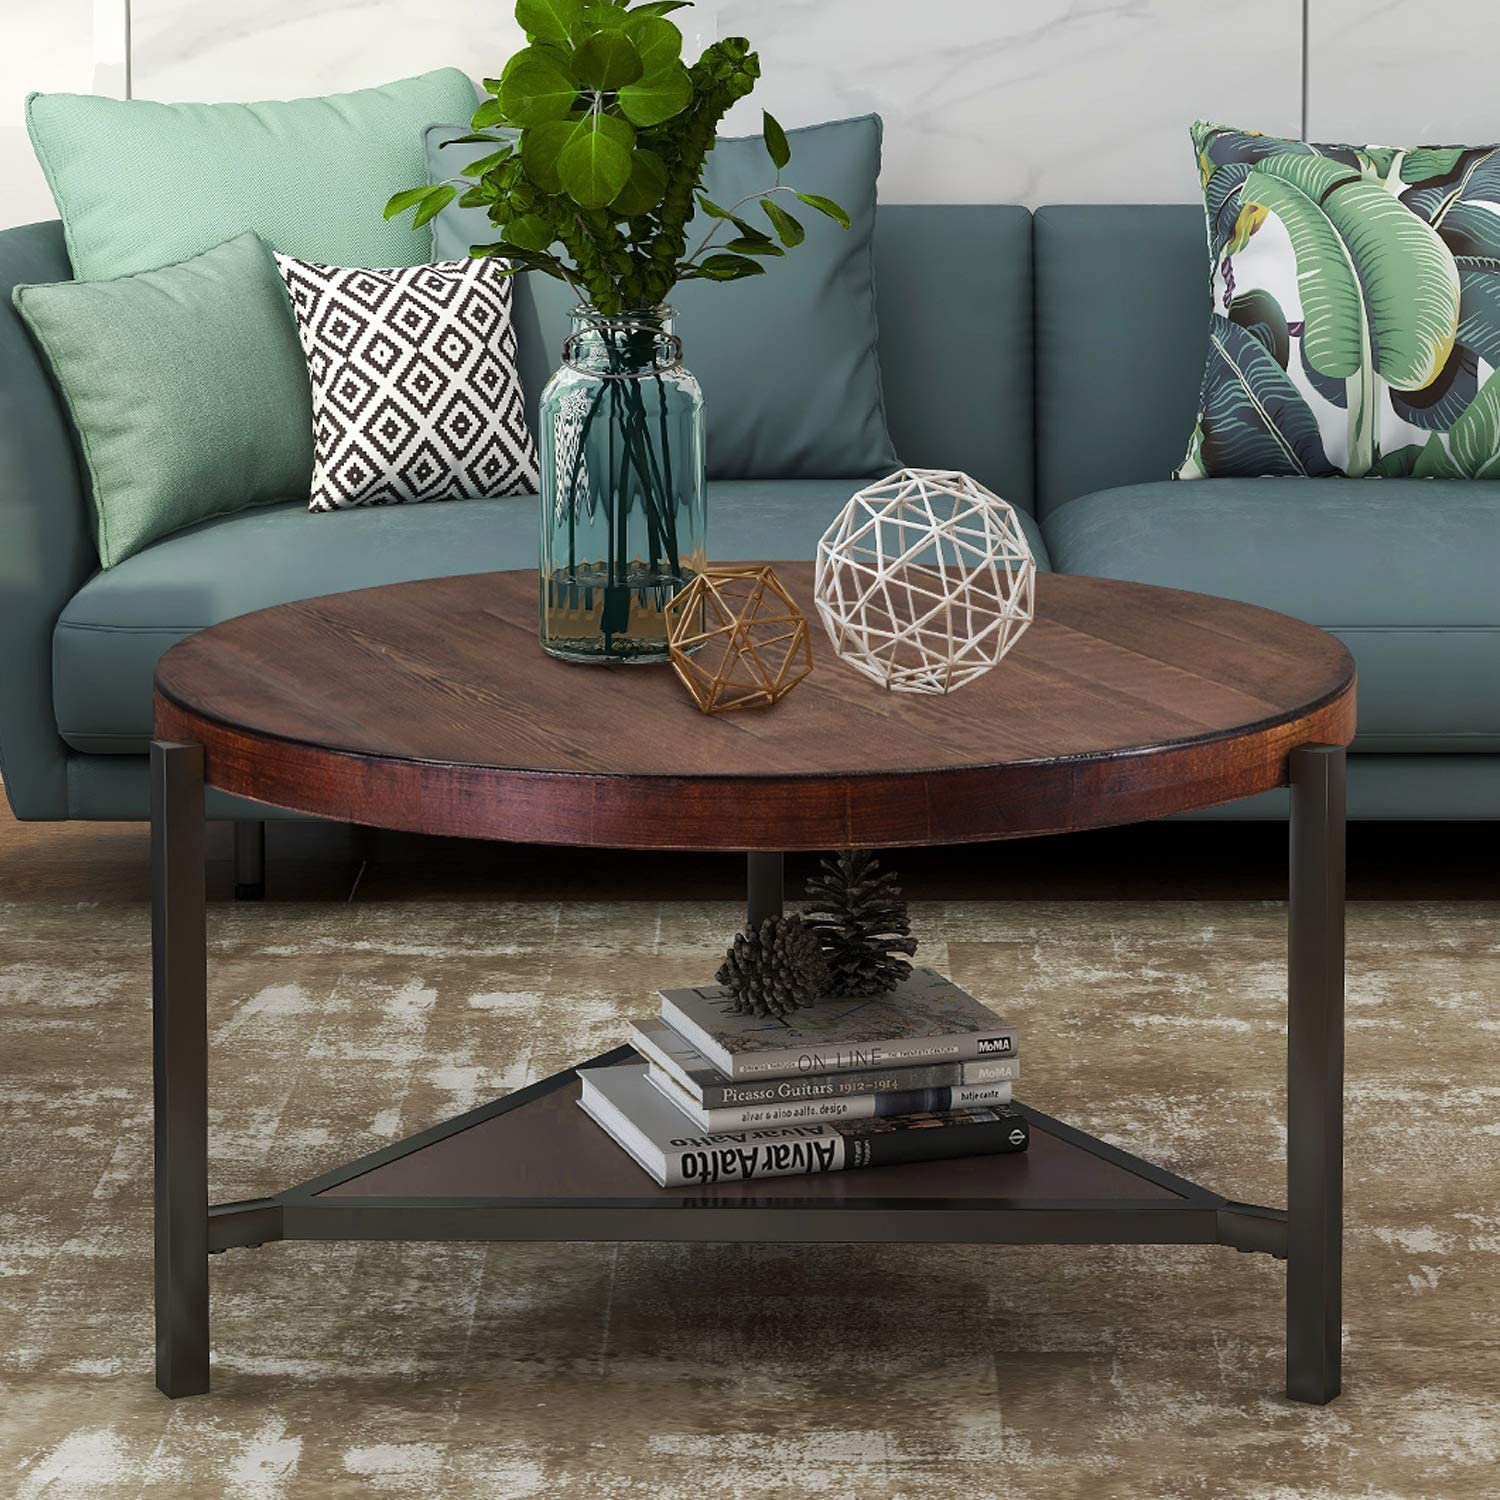 - Amazon.com: Round Coffee Table 35.4 Inch Industrial Coffee Table